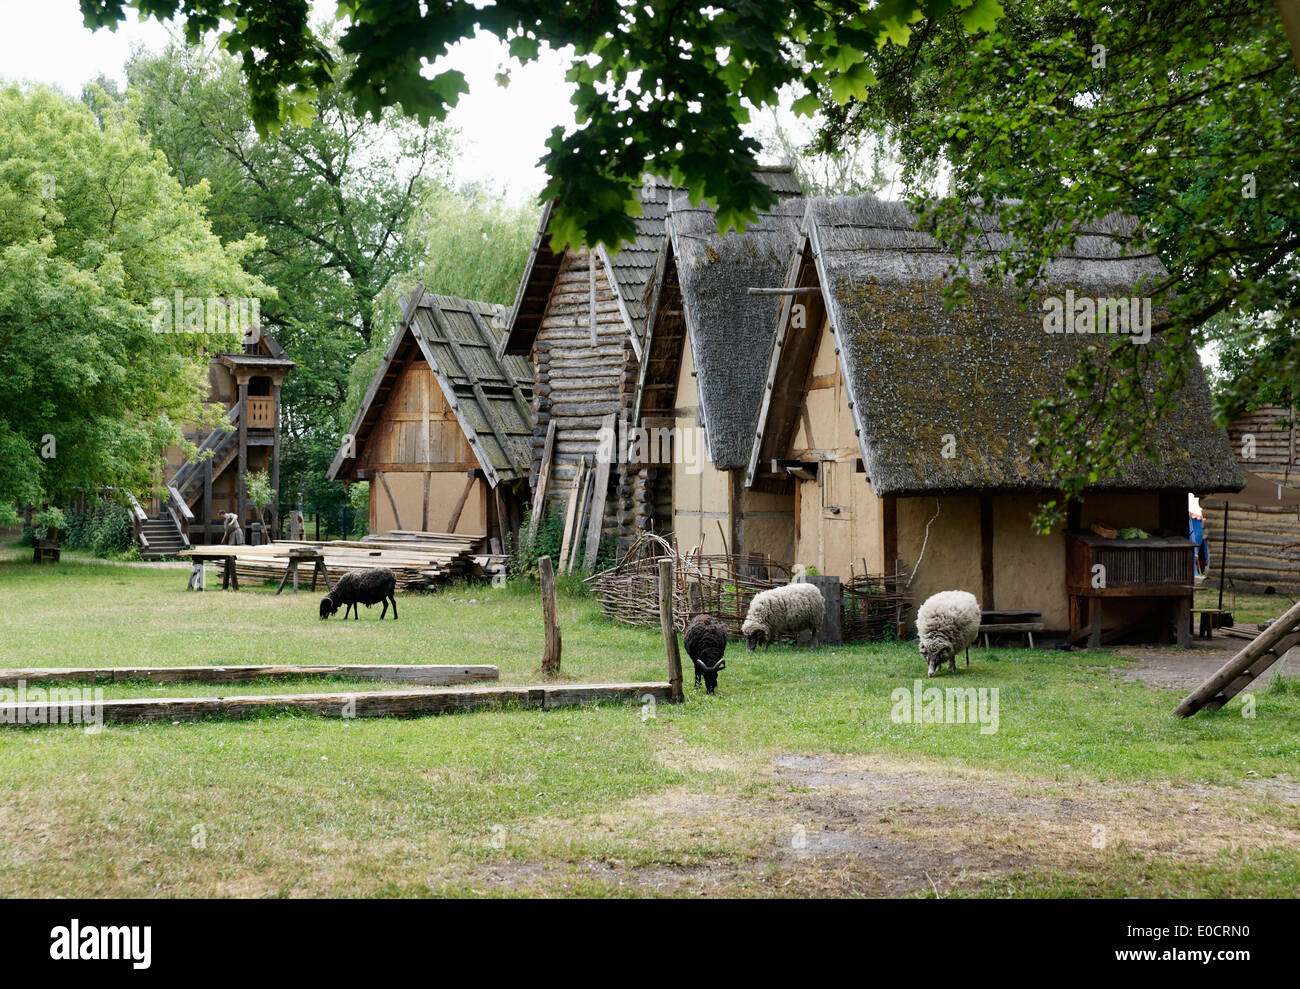 Open Air Museum, Middle Ages Village Centre Castrum Turglowe, Torgelow, Mecklenburg-Western Pomerania, Germany - Stock Image